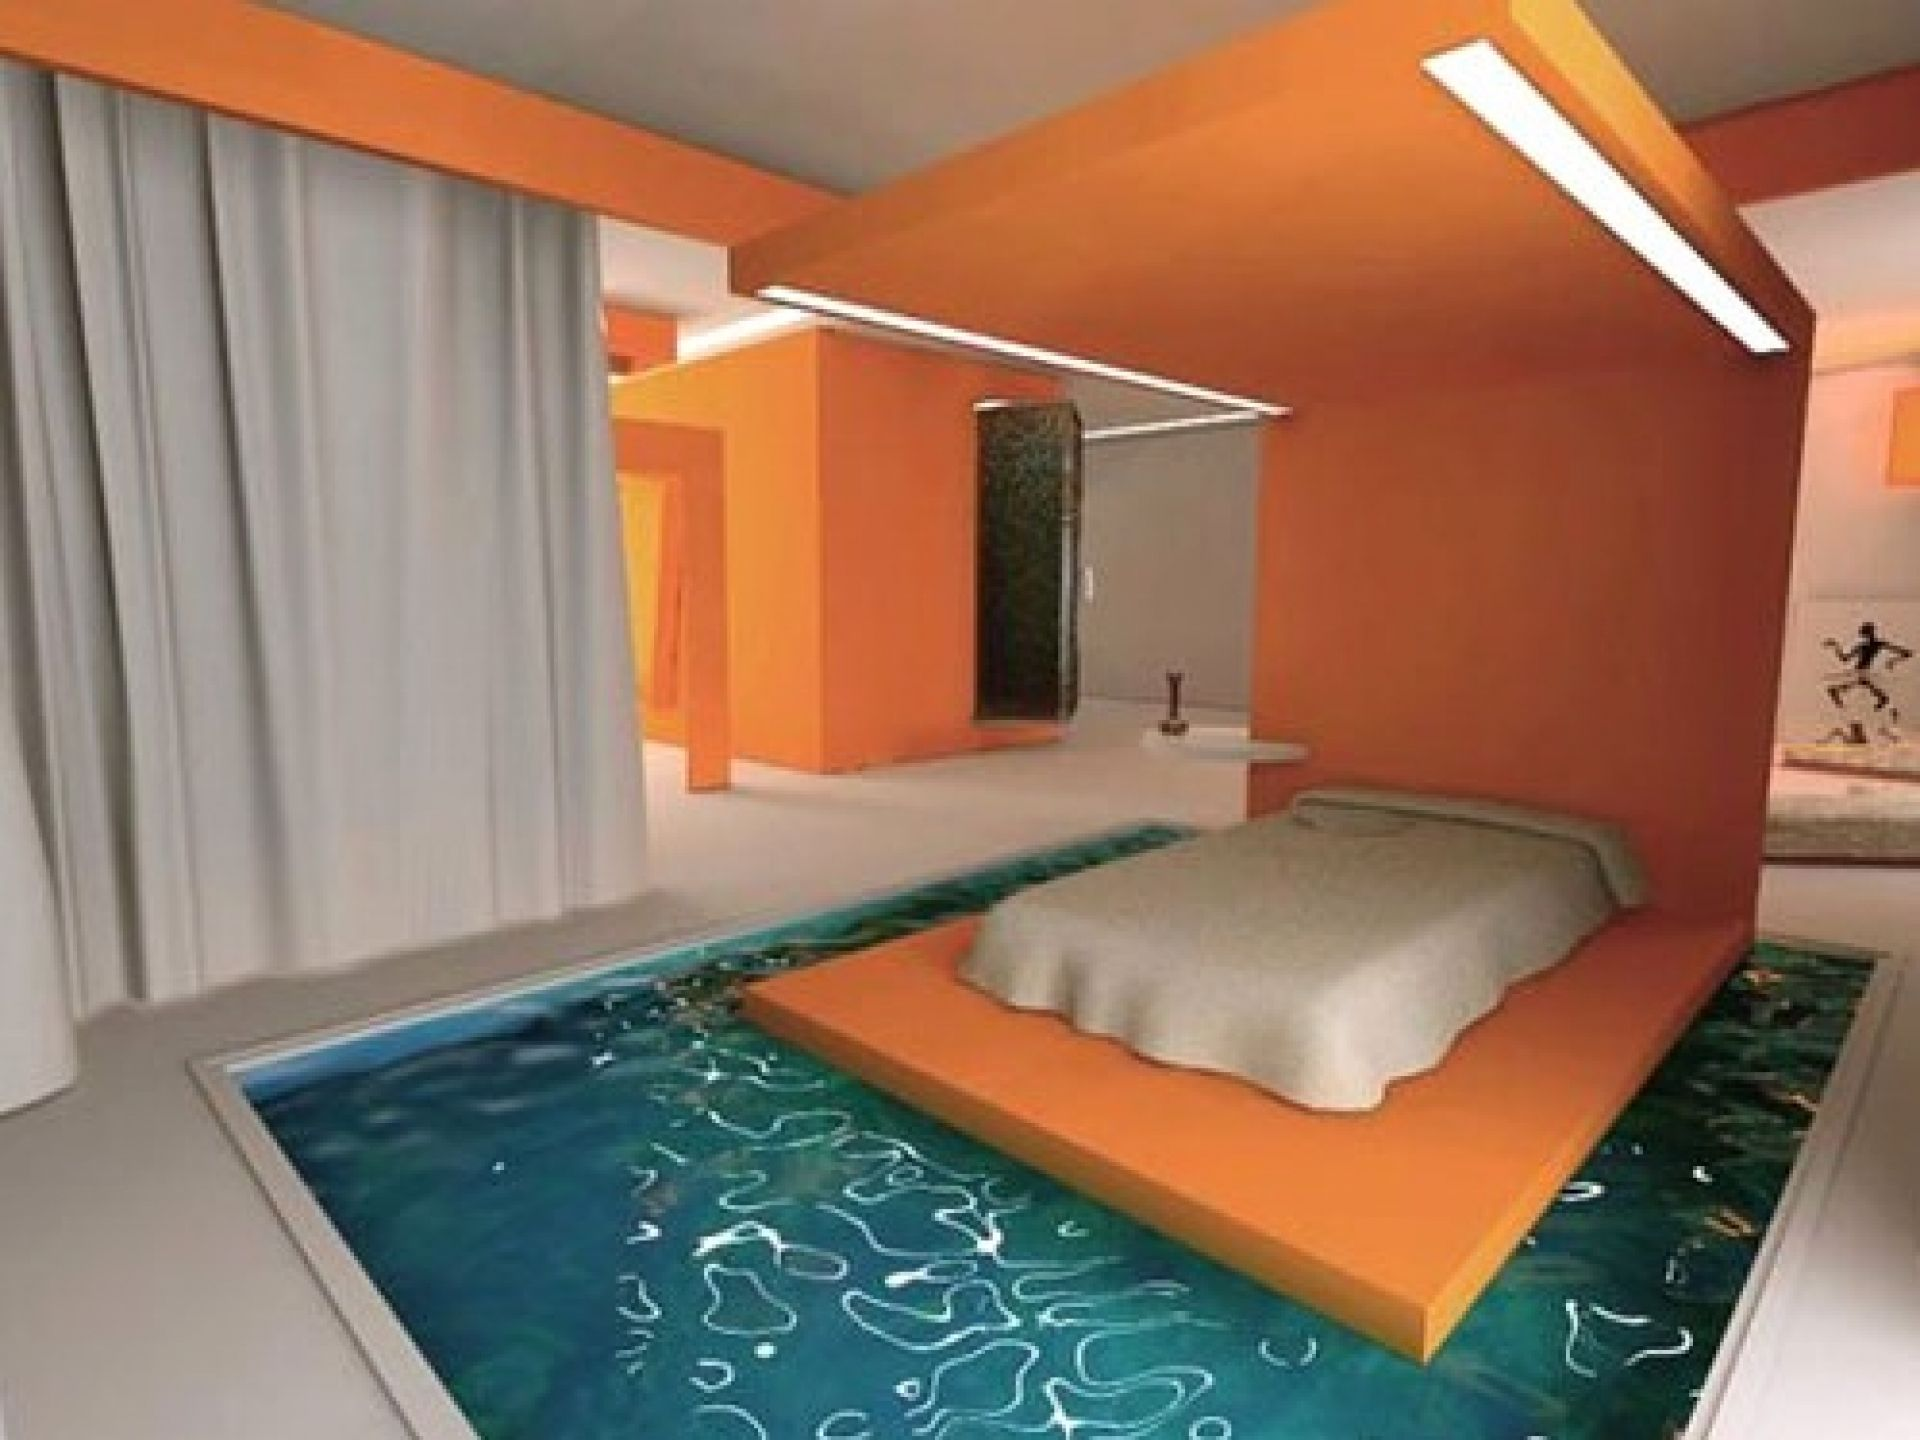 interior-design-pretty-room-ideas-the-painted-house-and-room-ideas-and-best-room-color-ideas-for-awesome-room-ideas.jpg (1920×1440)